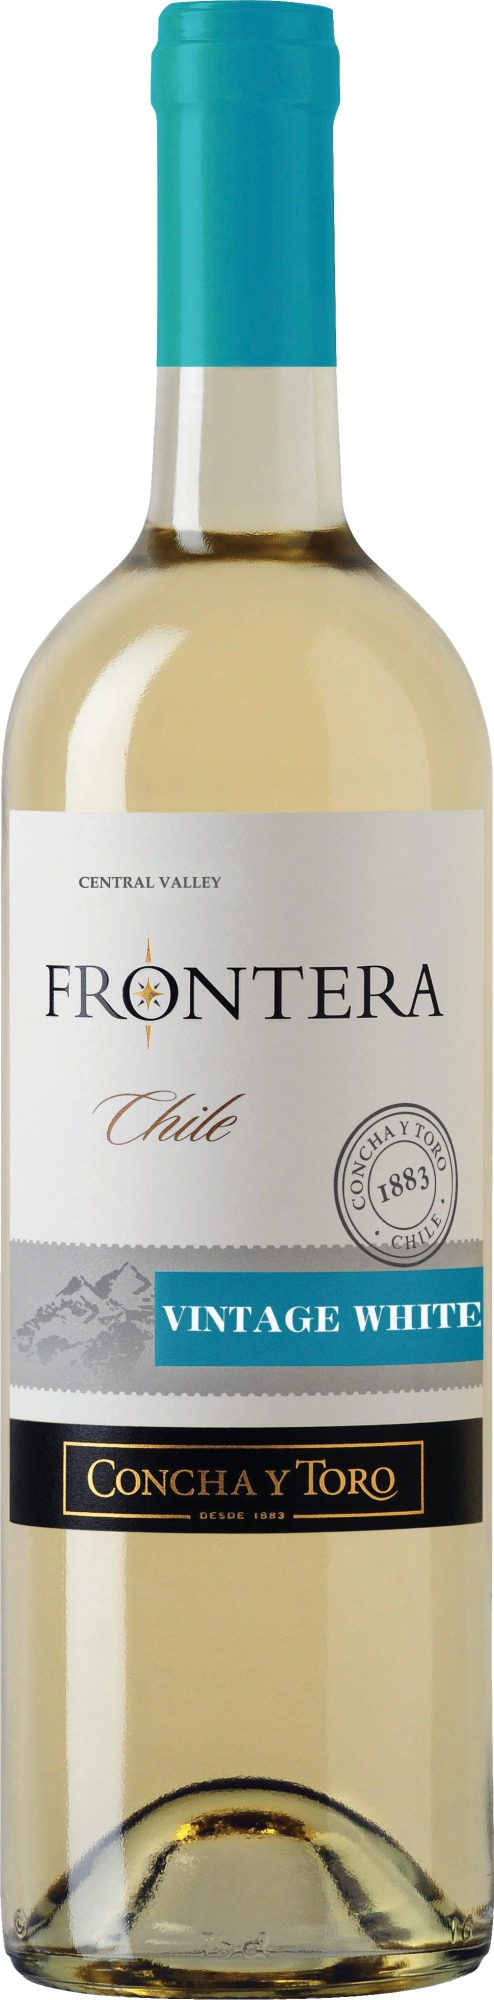 Frontera Vintage White Central Valley